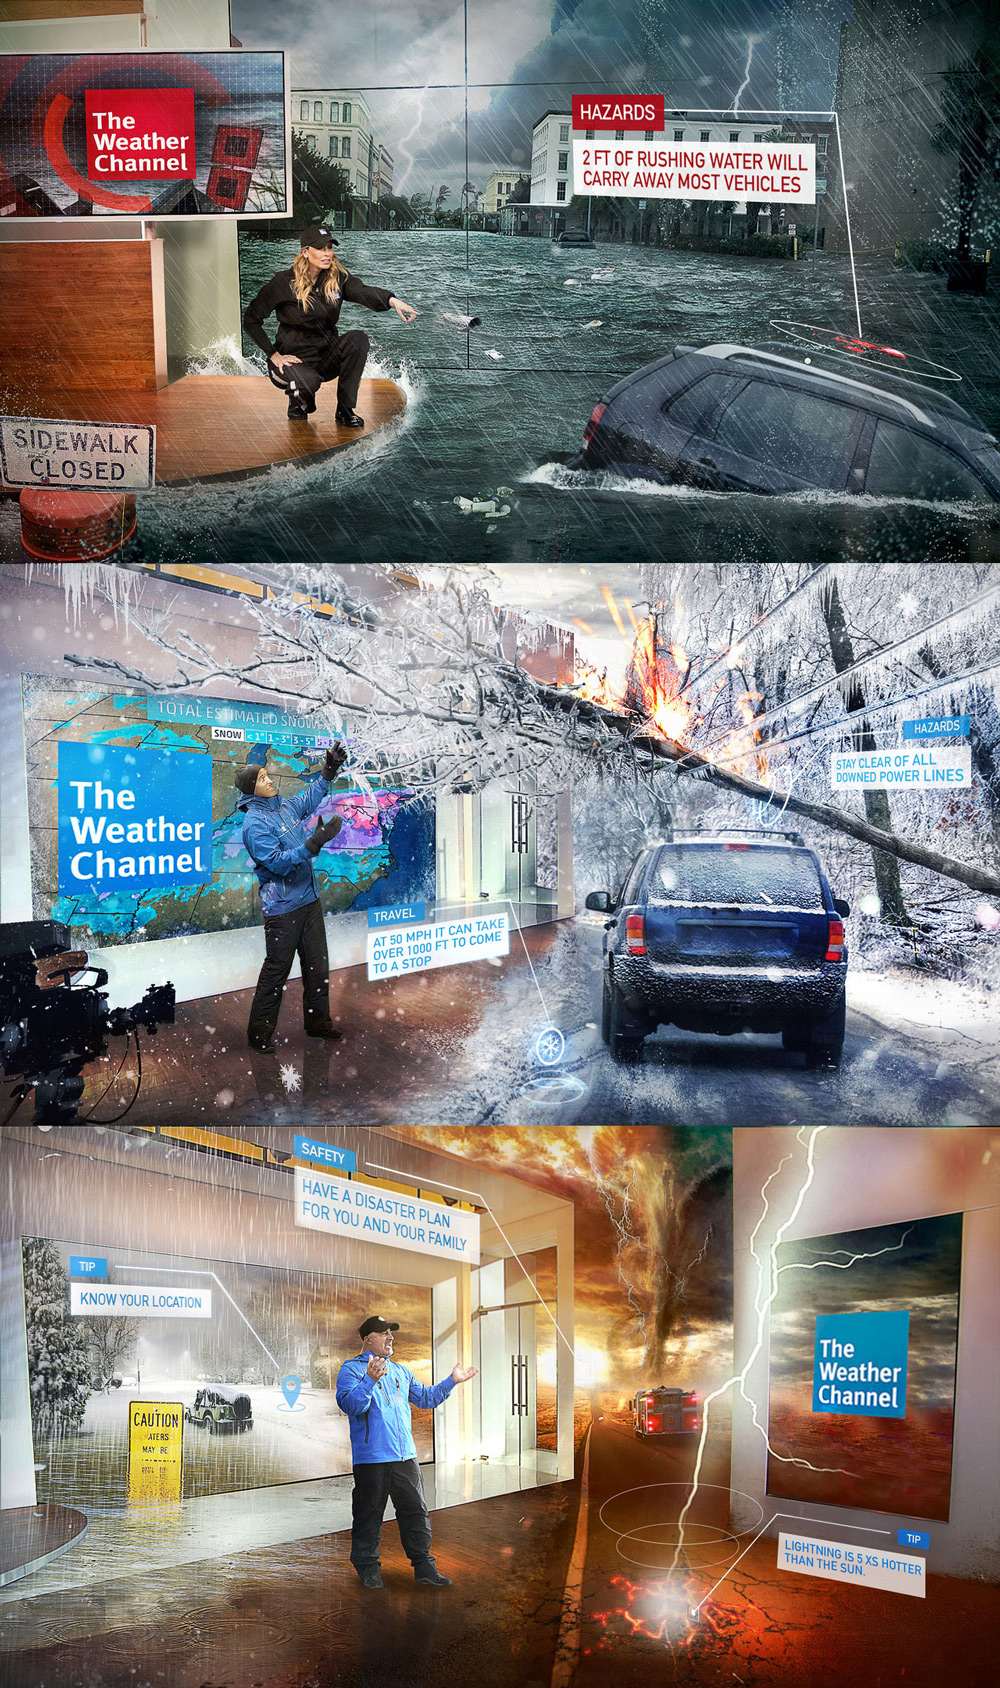 Examples of immersive mixed-reality graphics infused into weather presentations